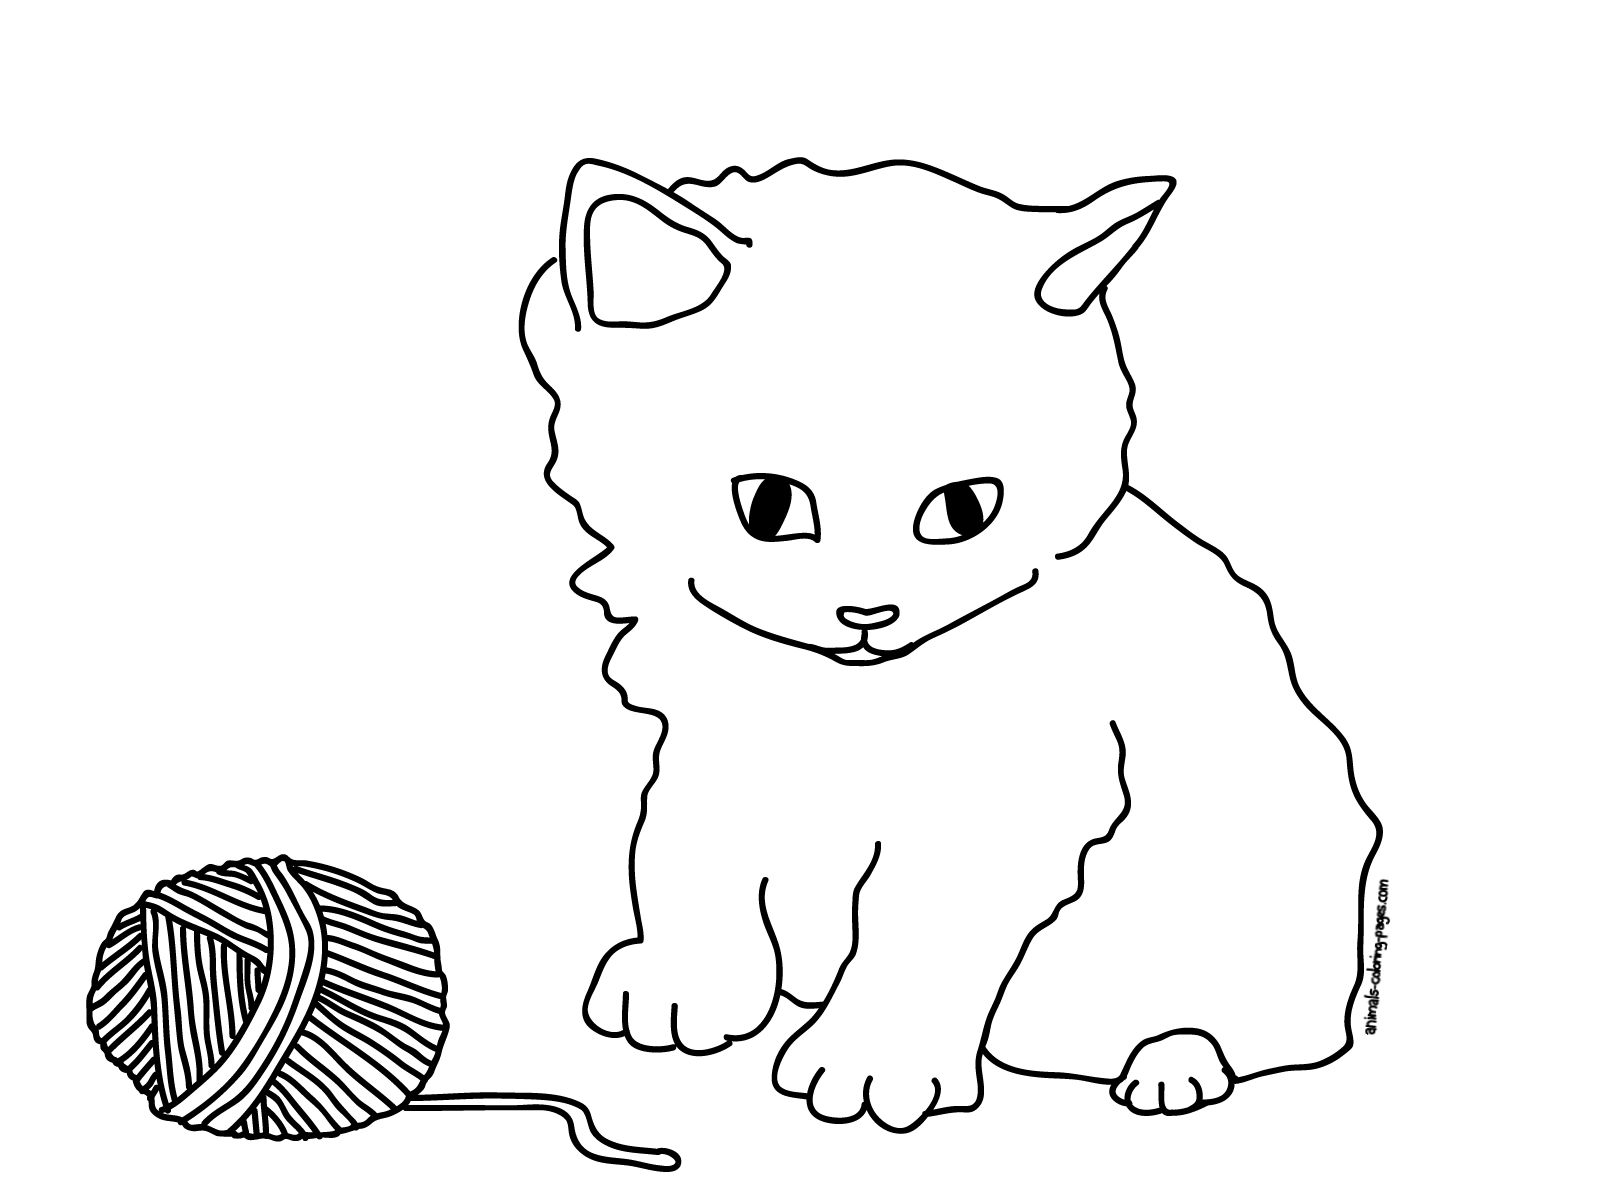 pictures of kittens to color teacup kittens coloring book kayomi harai 9781497202269 to color kittens of pictures